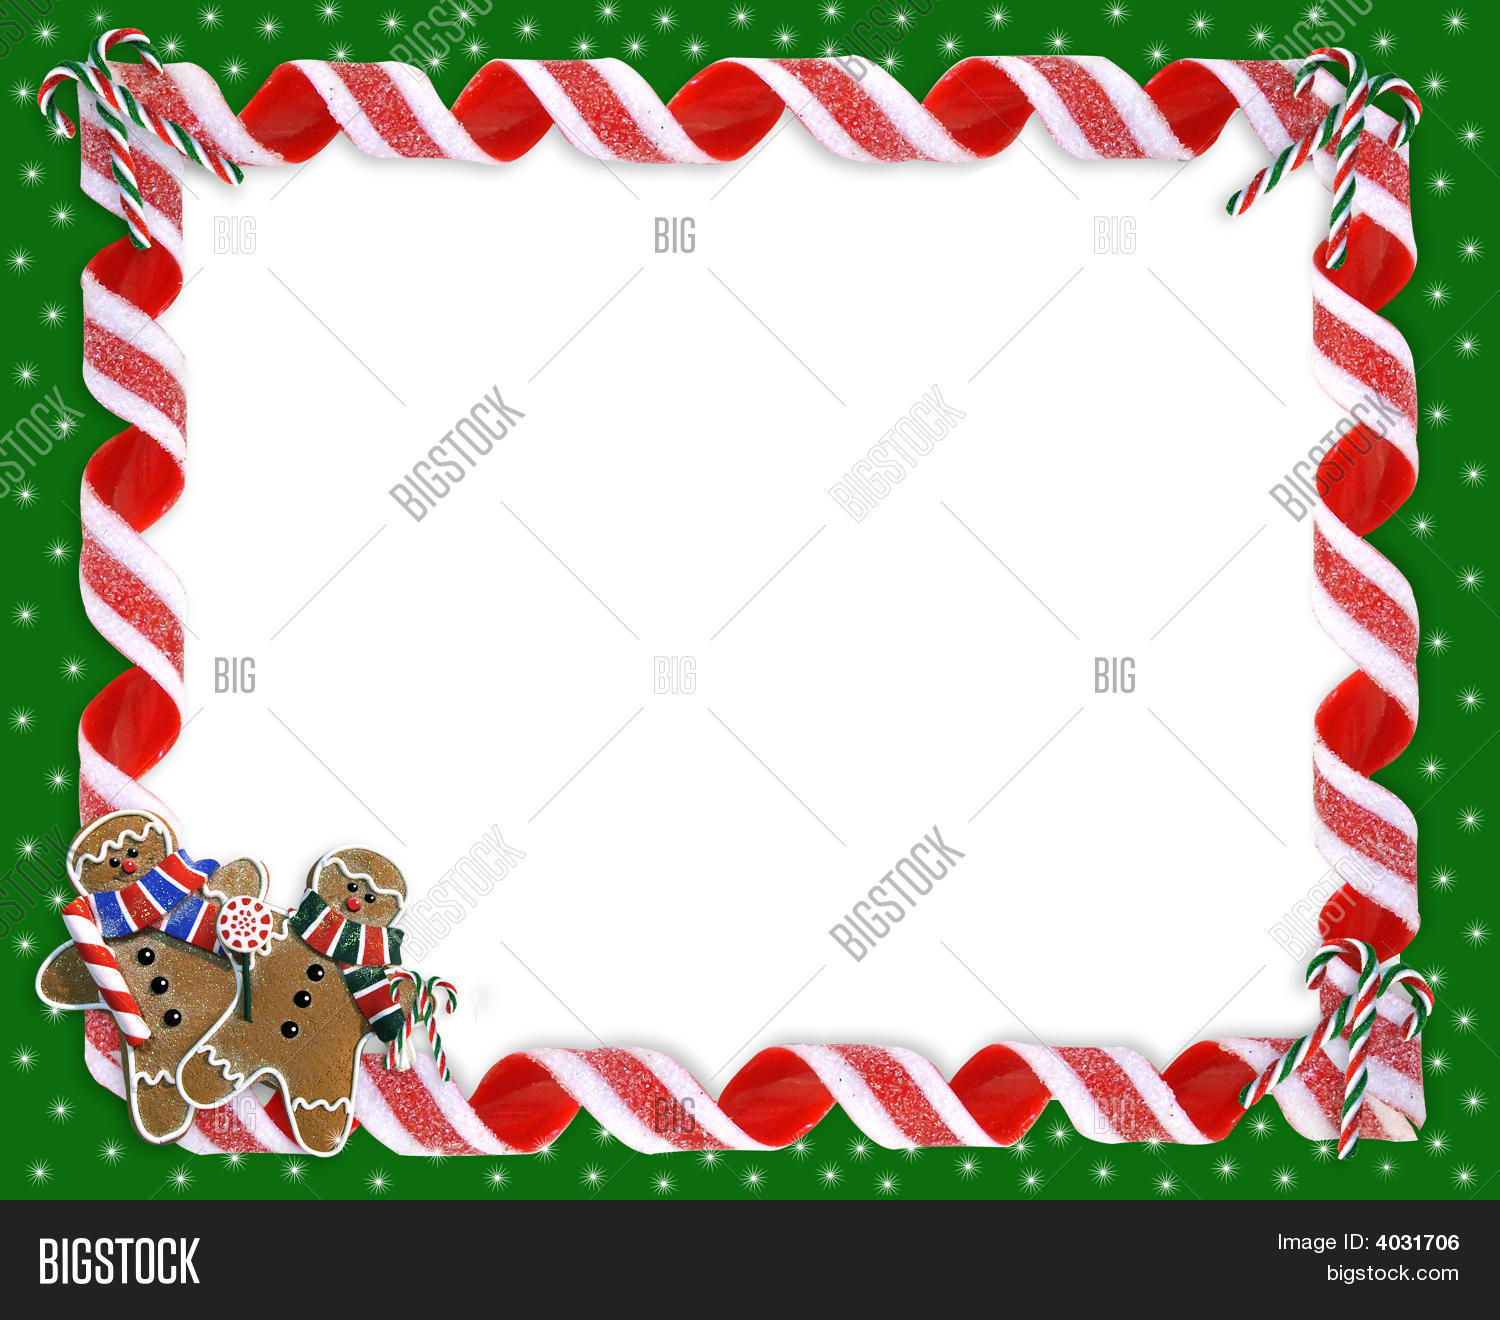 Christmas Frame Candy Ribbons Image & Photo | Bigstock